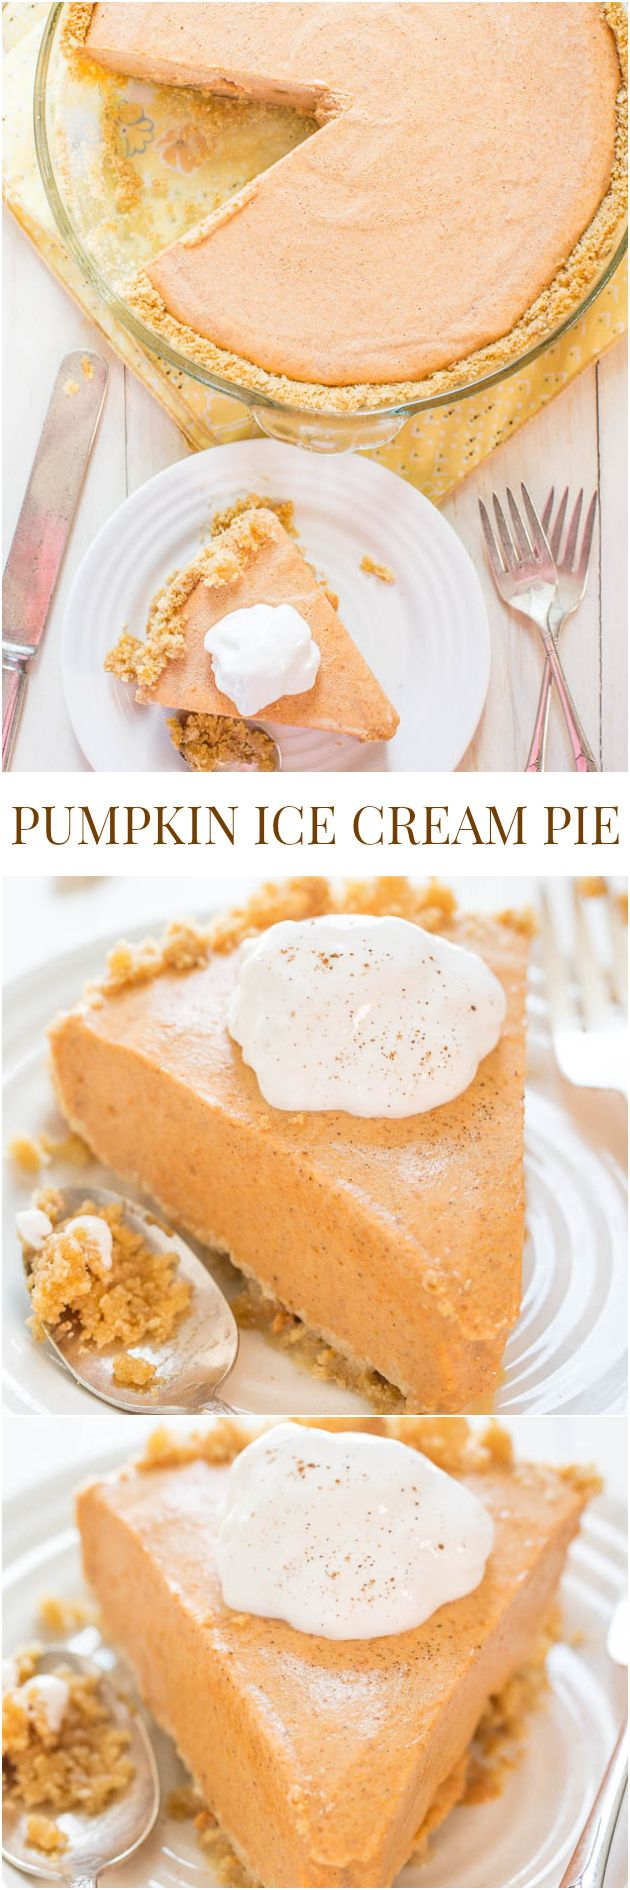 Pumpkin Ice Cream Pie - The easiest pumpkin pie you'll ever make! Put it on your Thanksgiving menu and save yourself pie-making stress!! by @averie